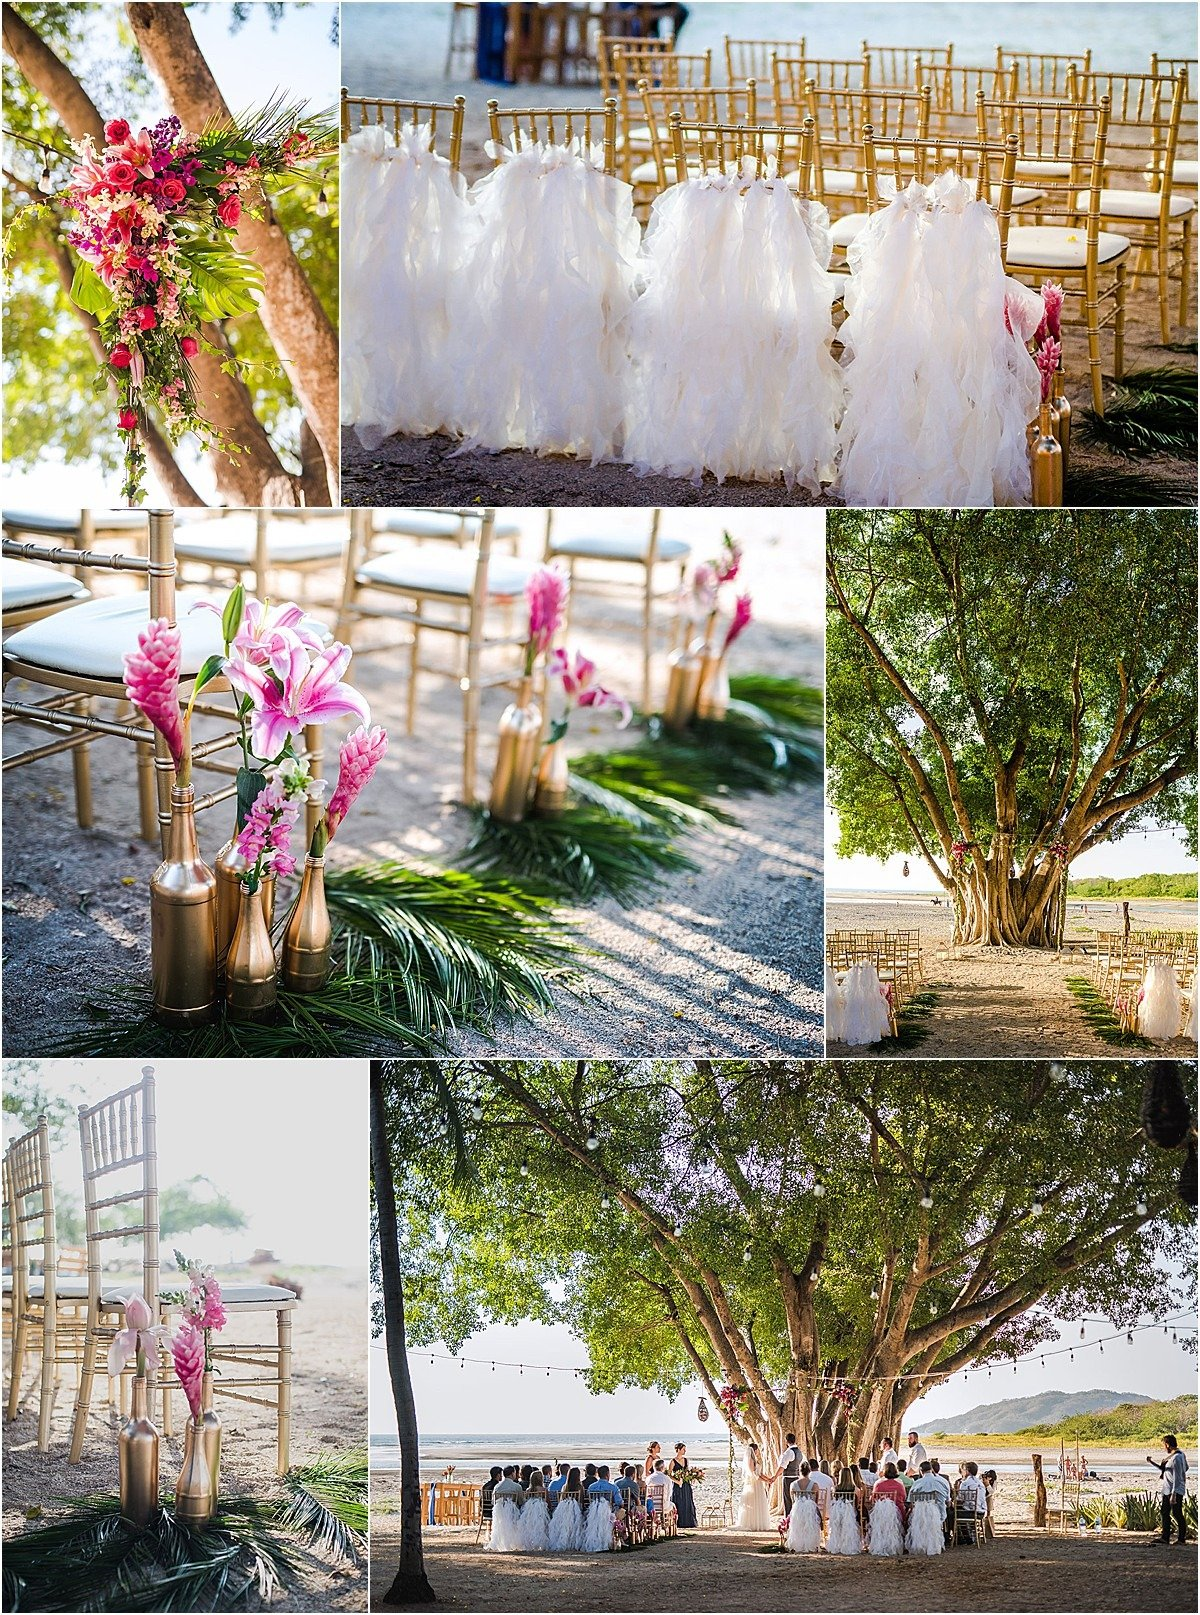 cermony decor white ruffles on chair backs and tropical lined aisle